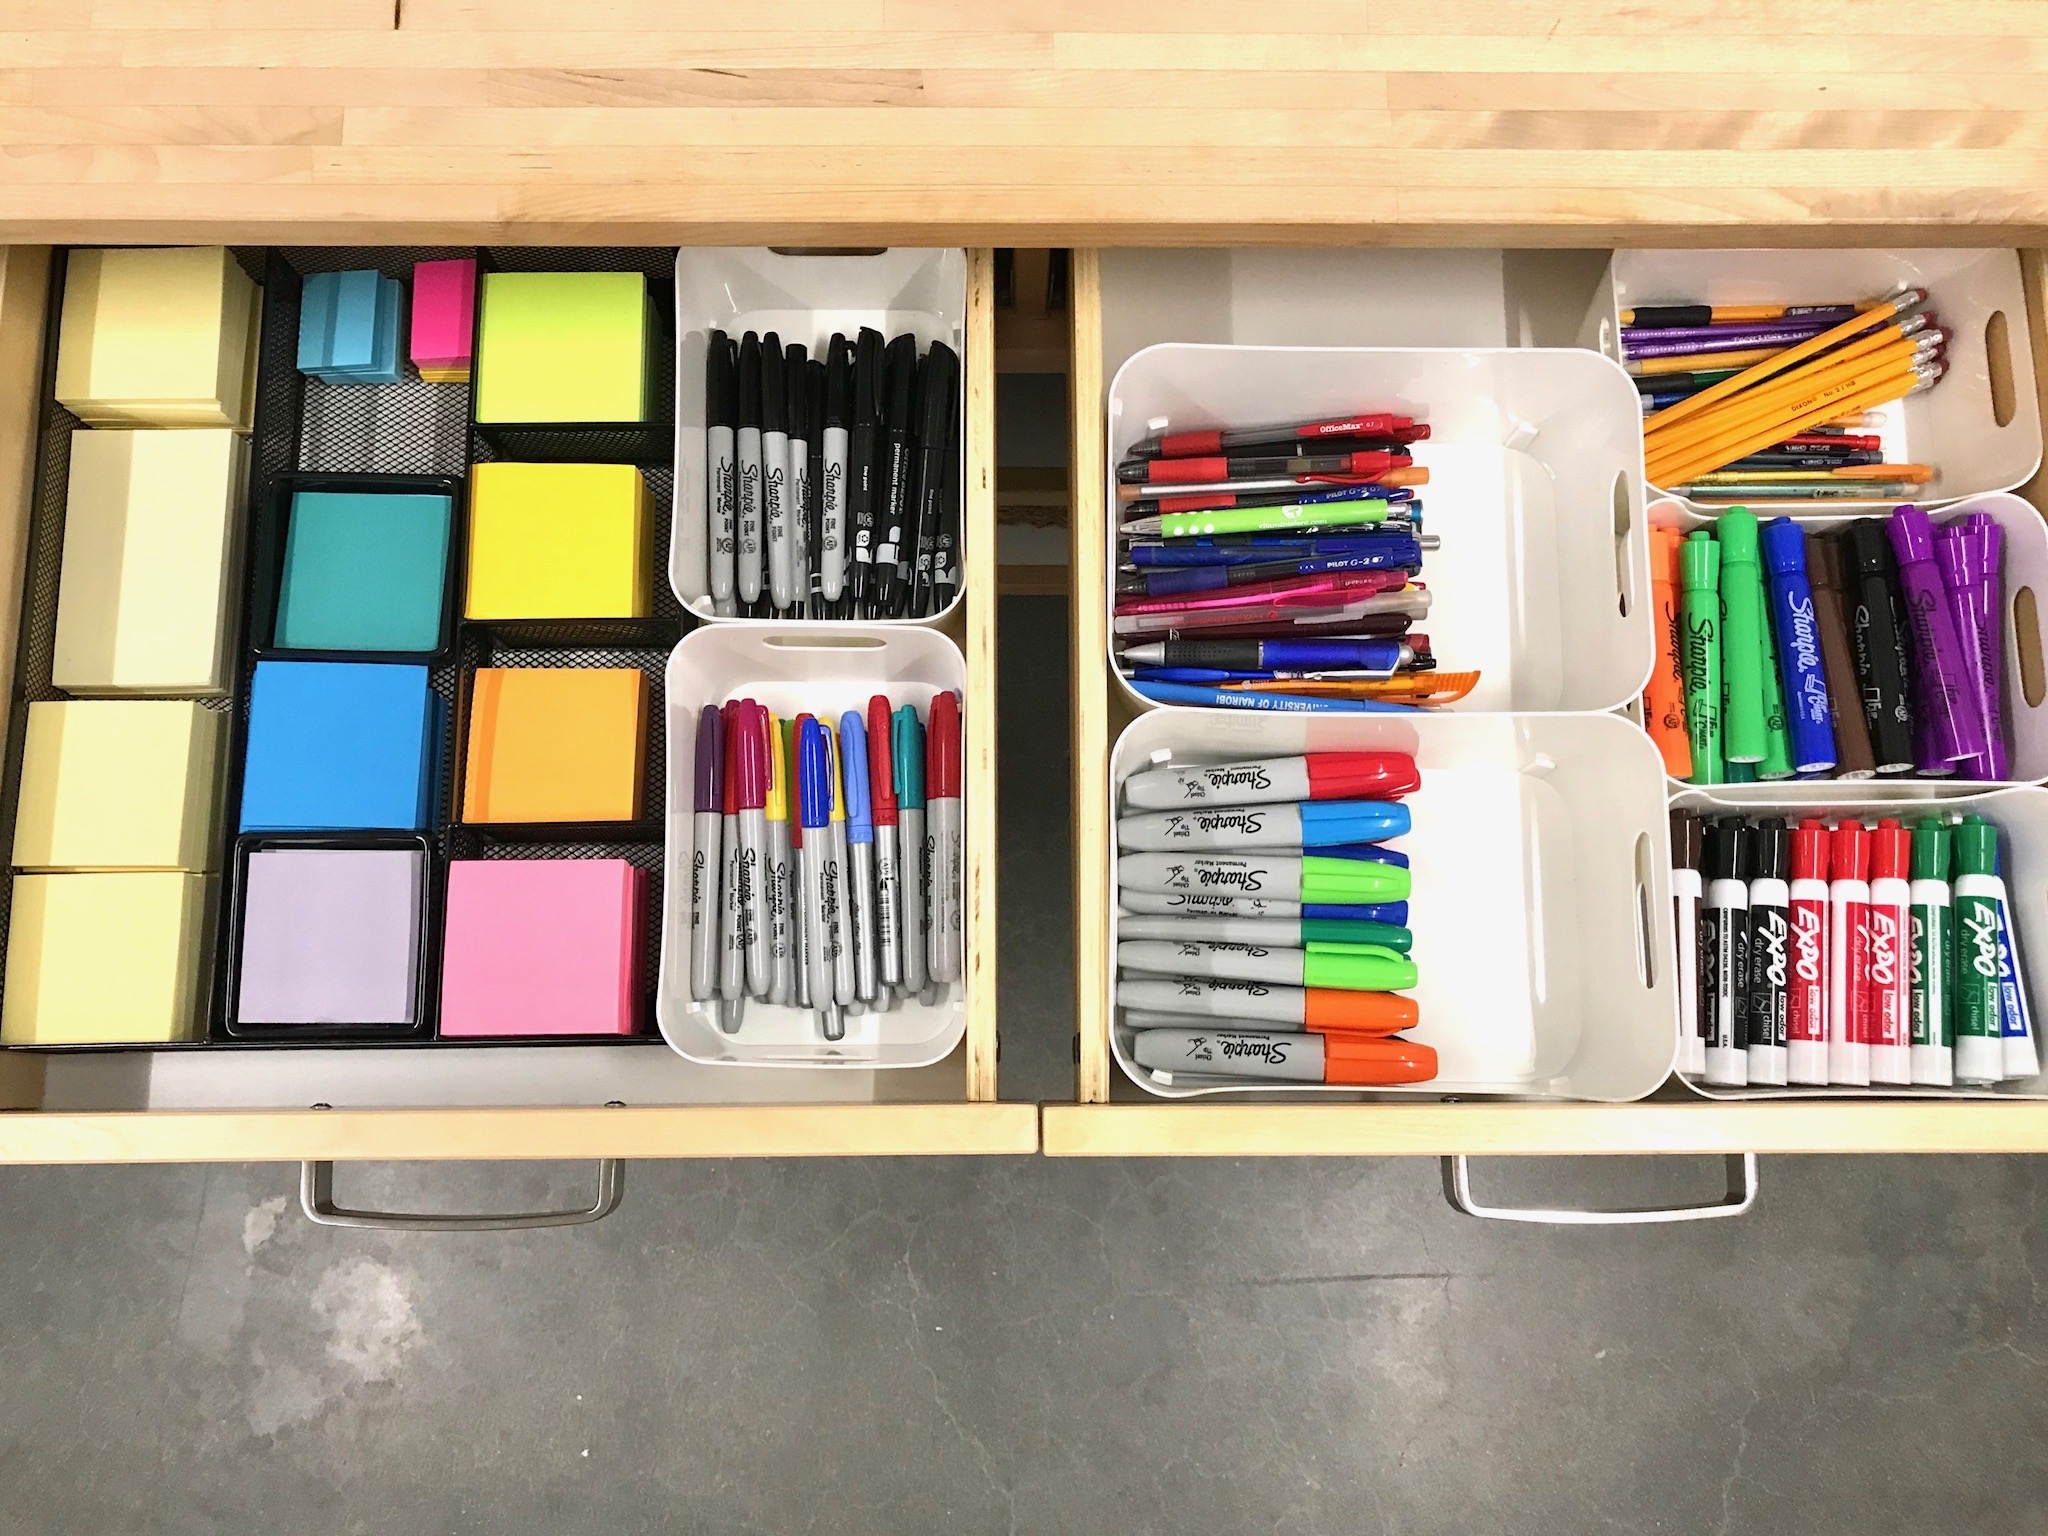 Organized office supply drawers with markers, pens, and post-it notes.